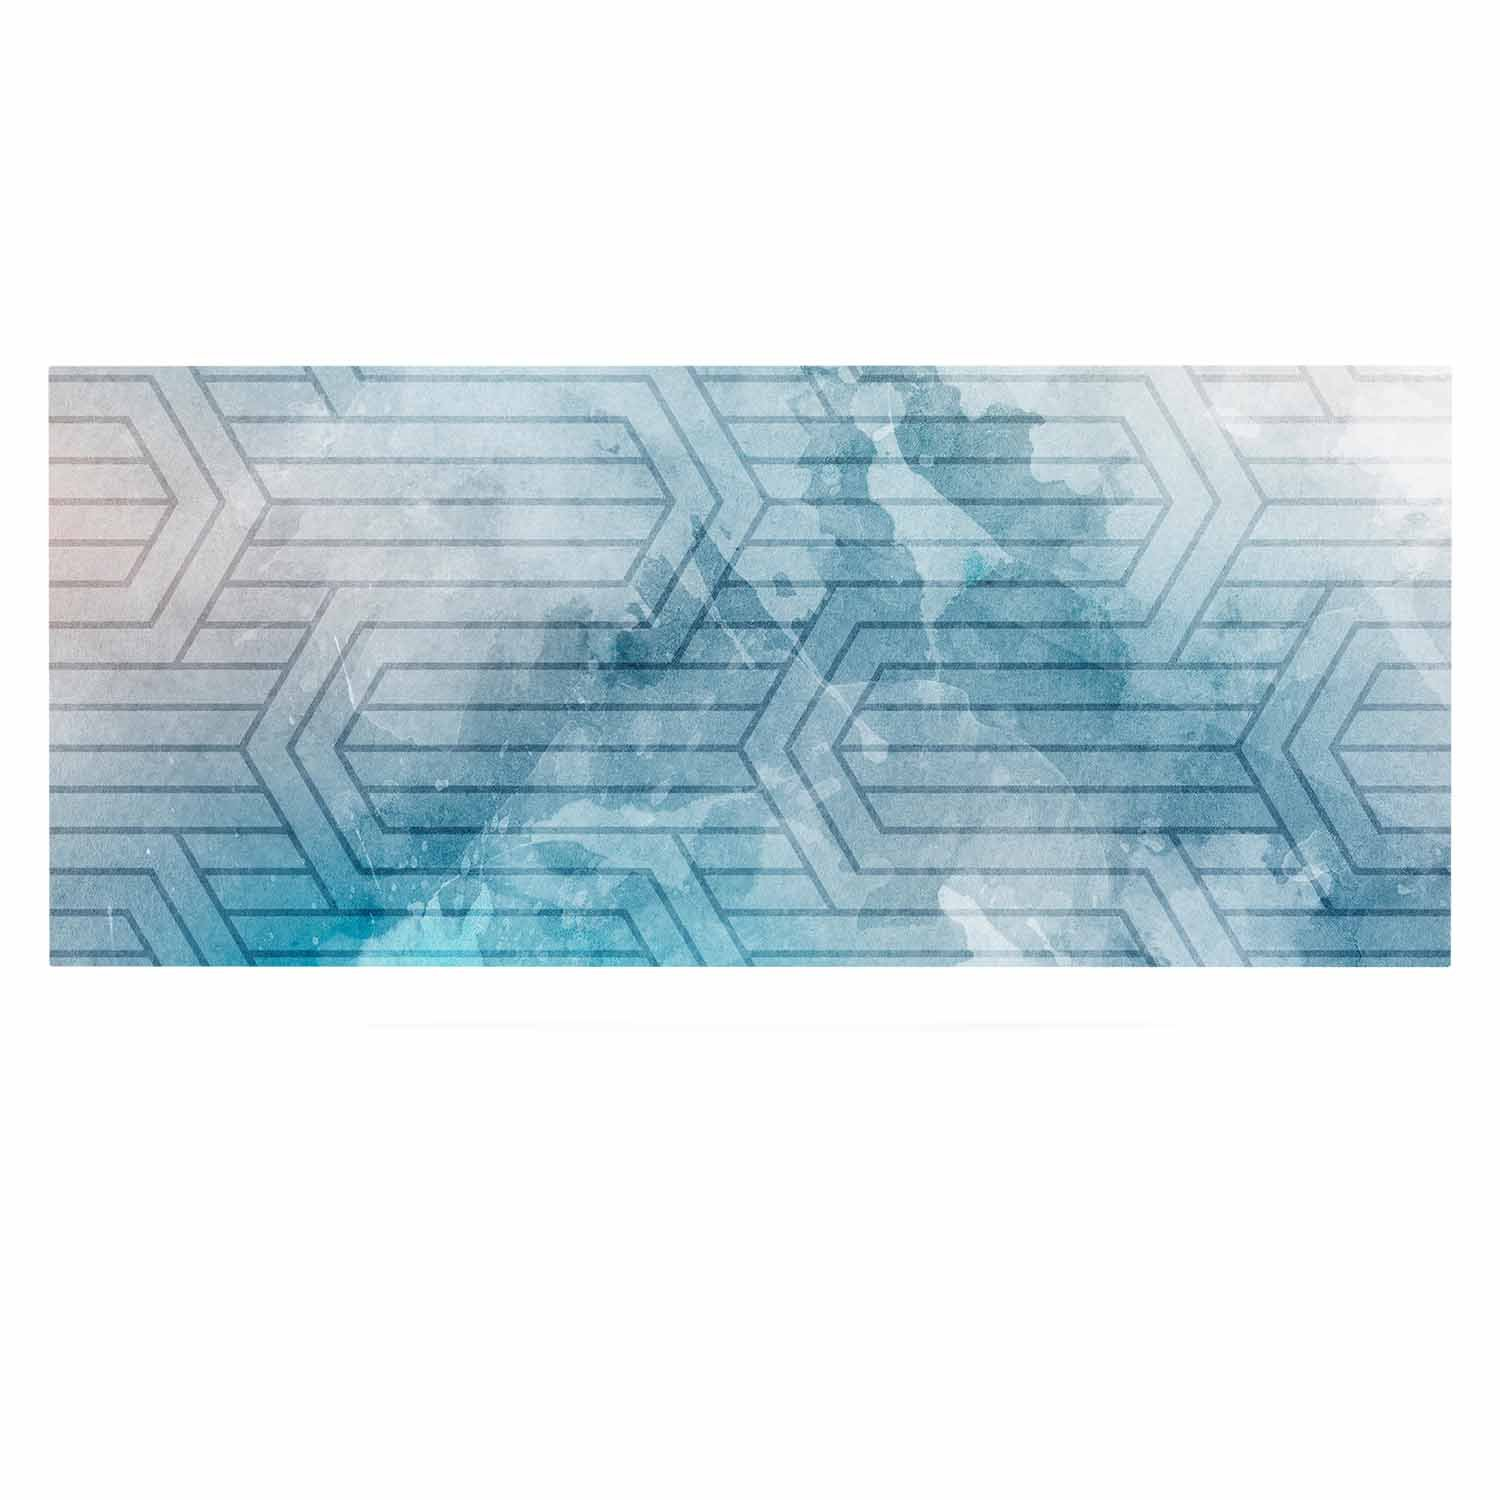 24 x 36 Kess InHouse Matt Eklund Frost Labyrinth Blue White Luxe Rectangle Panel